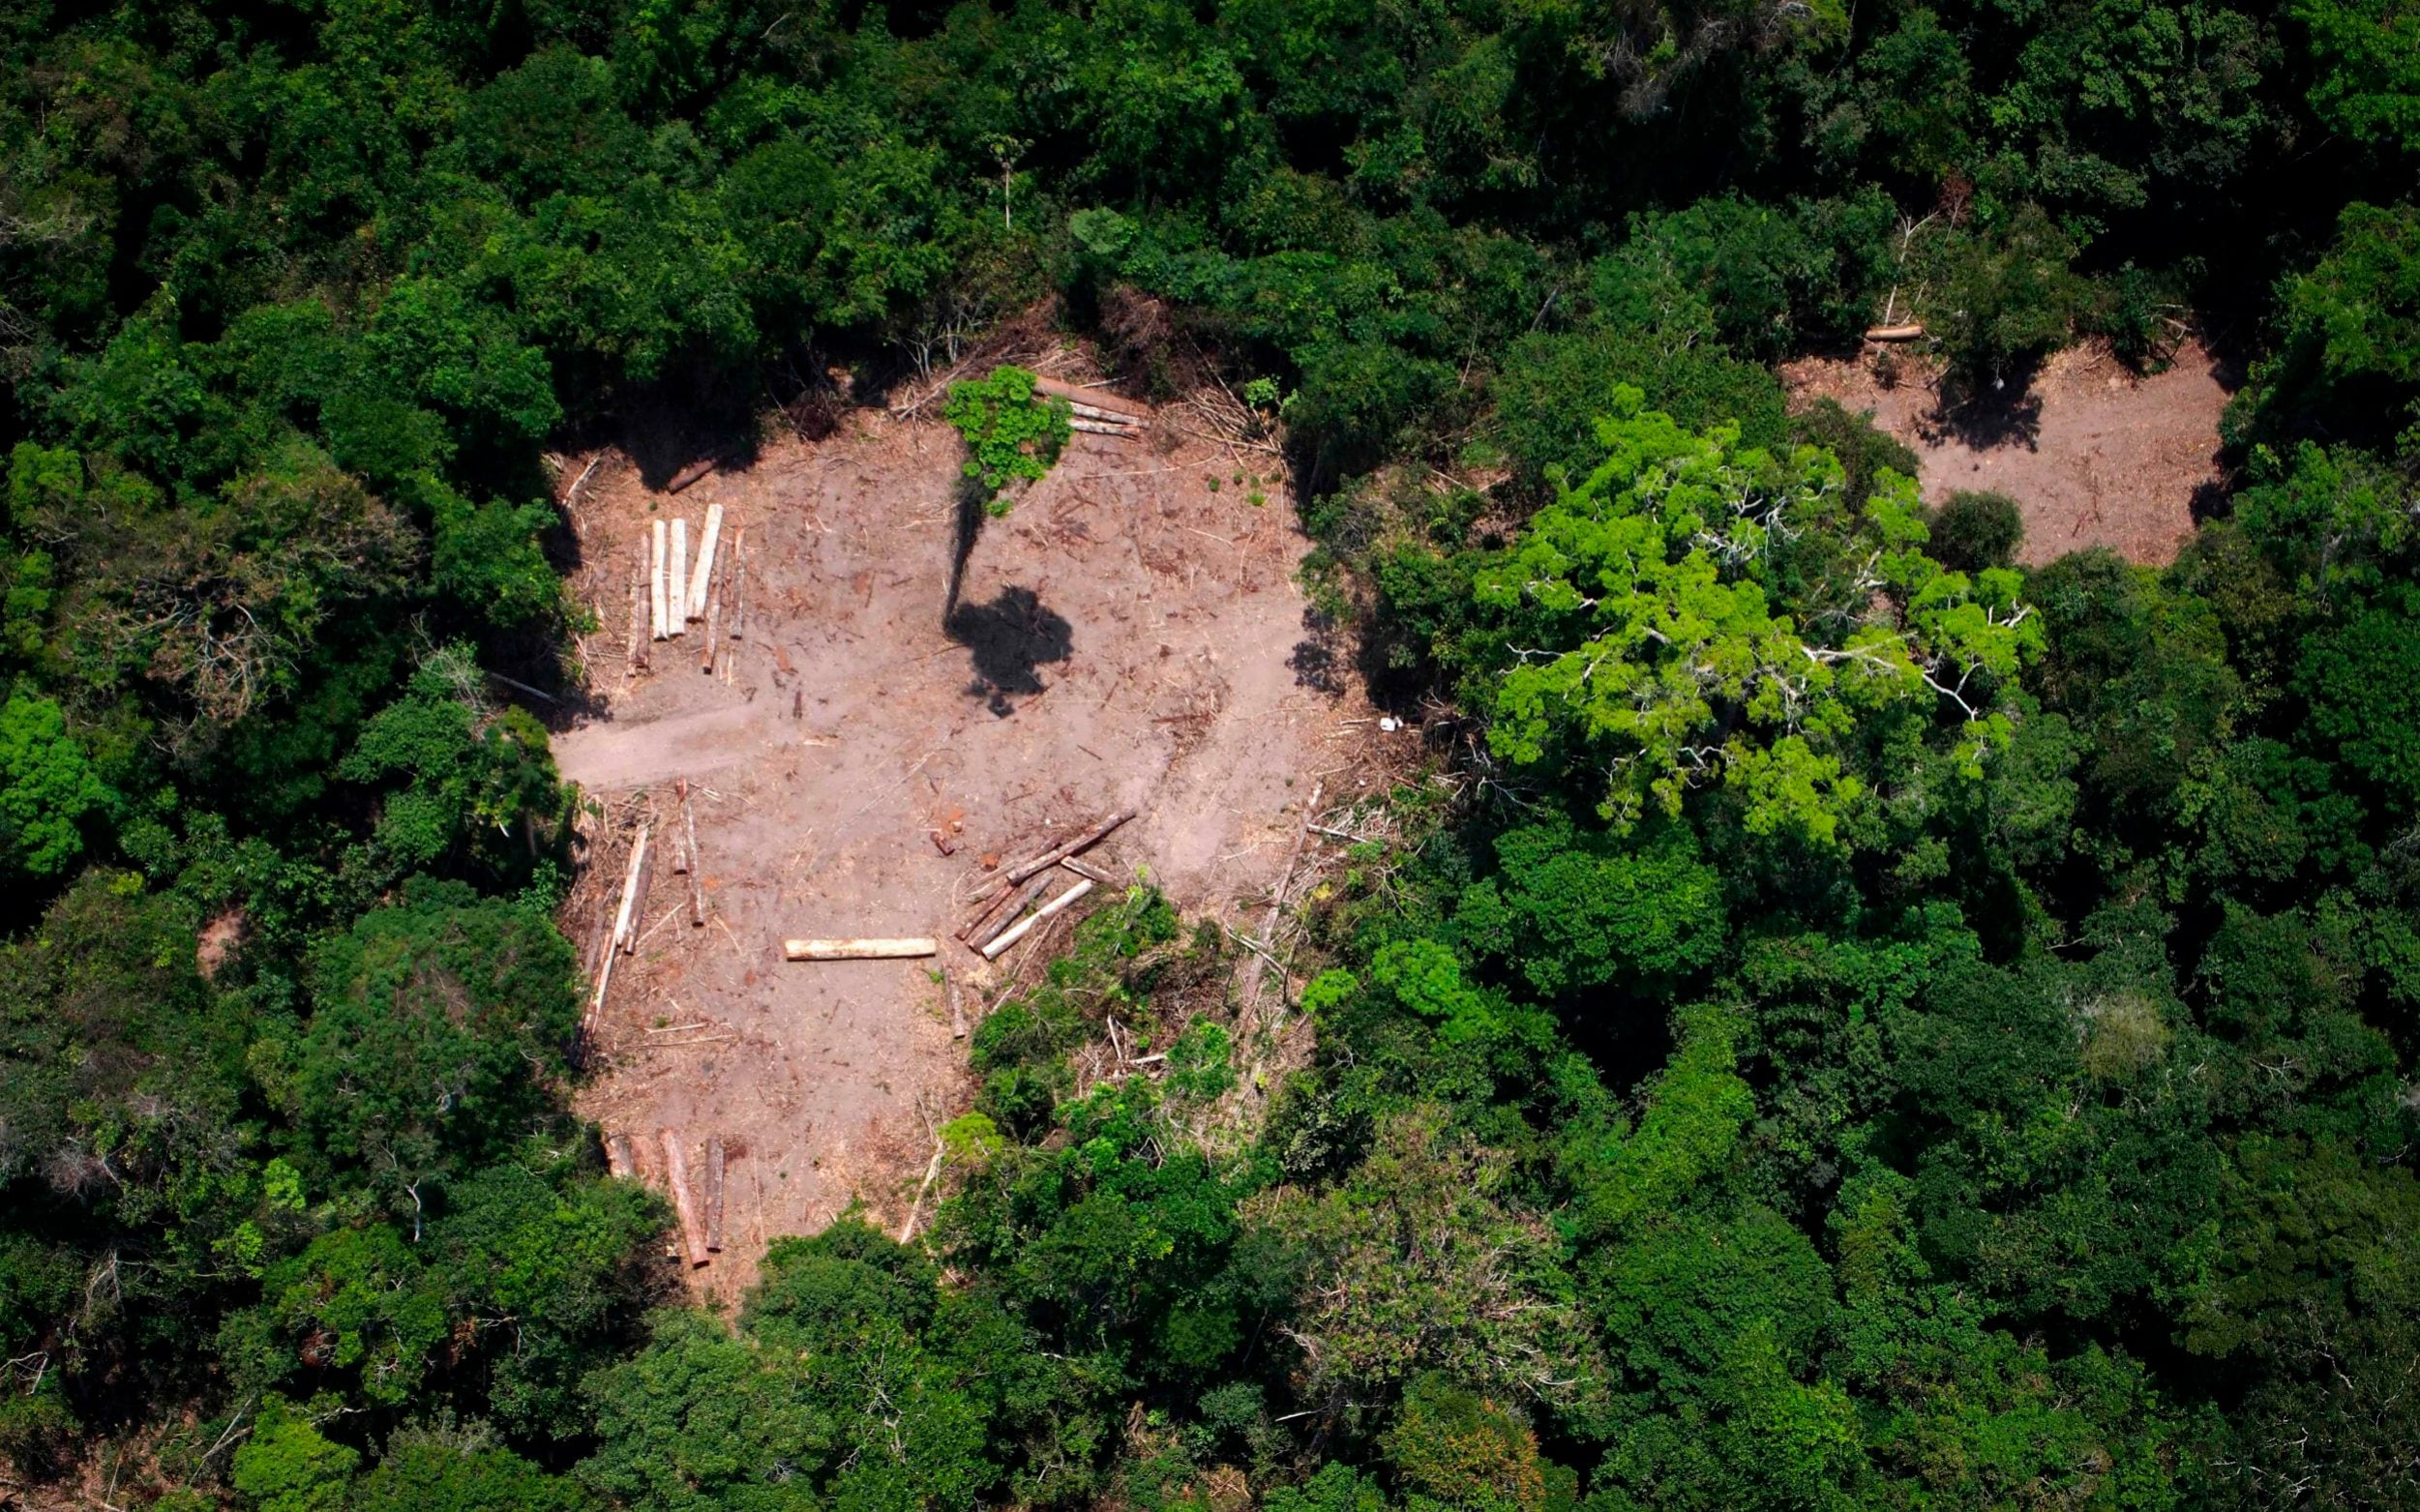 Brazilian official who protects Amazon indigenous tribes shot dead